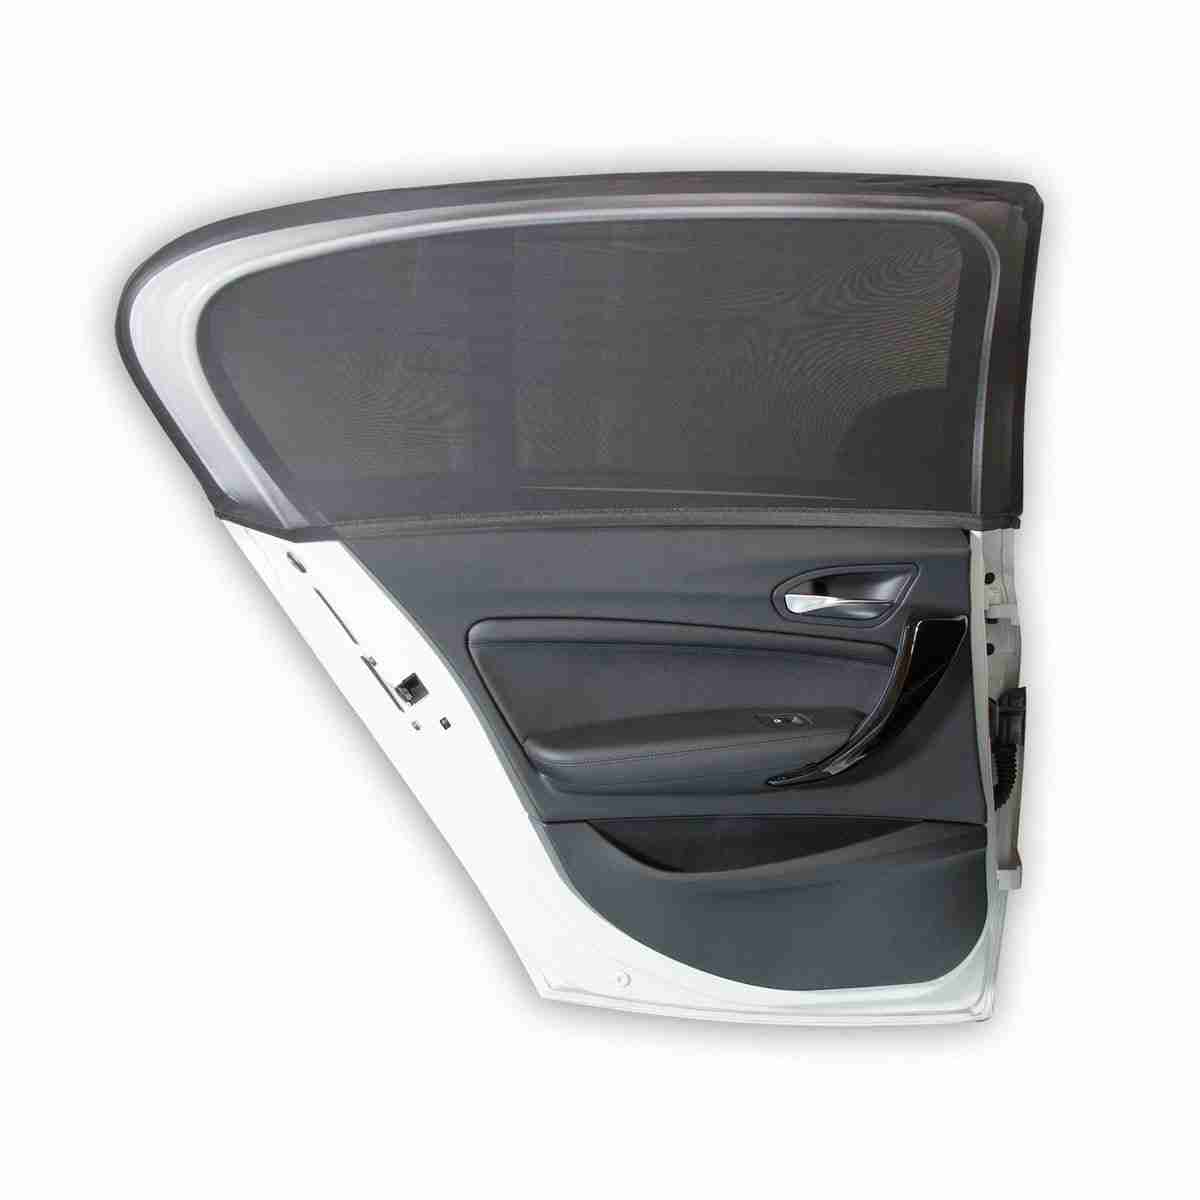 Streches over the contour of your door frame to protect passengers from UV rays and glare.